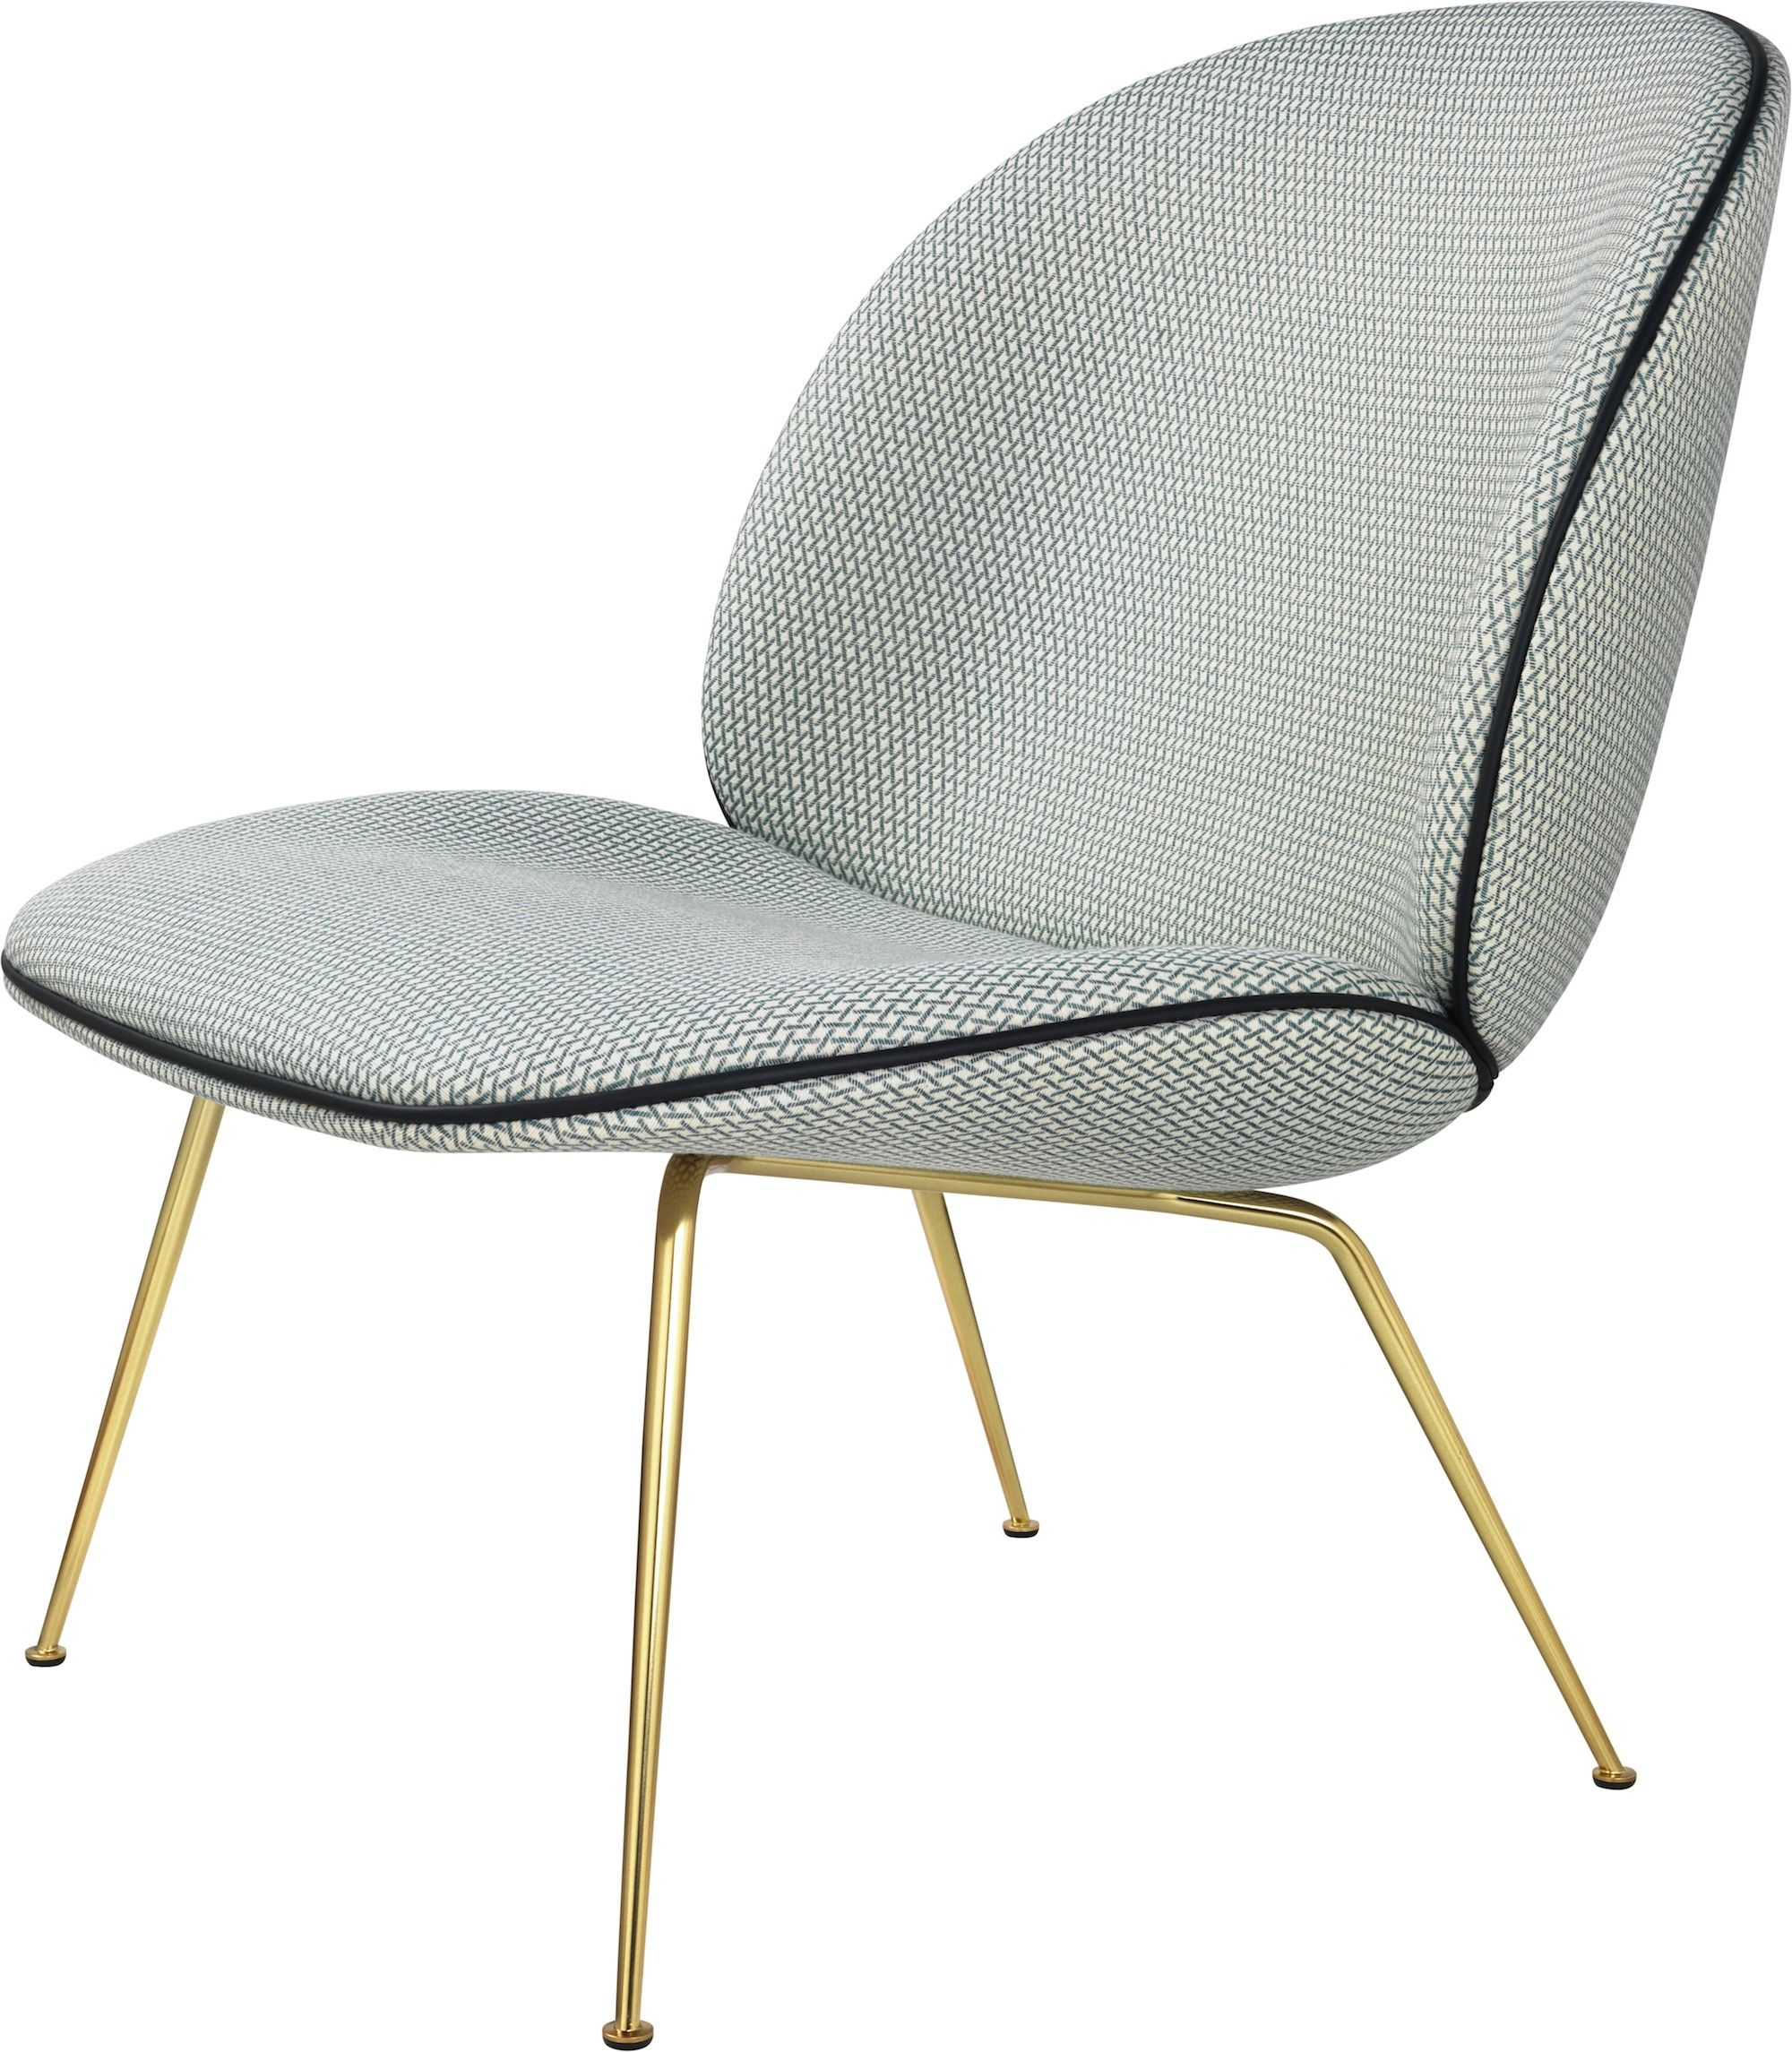 Chaise Beetle Chaise Gubi Gamfratesi Beetle Chair Gubi Marseille Atelier 159 Bette Lounge Chaise Tapissee With Images Gubi Beetle Lounge Chair Classy Furniture Furniture Chair